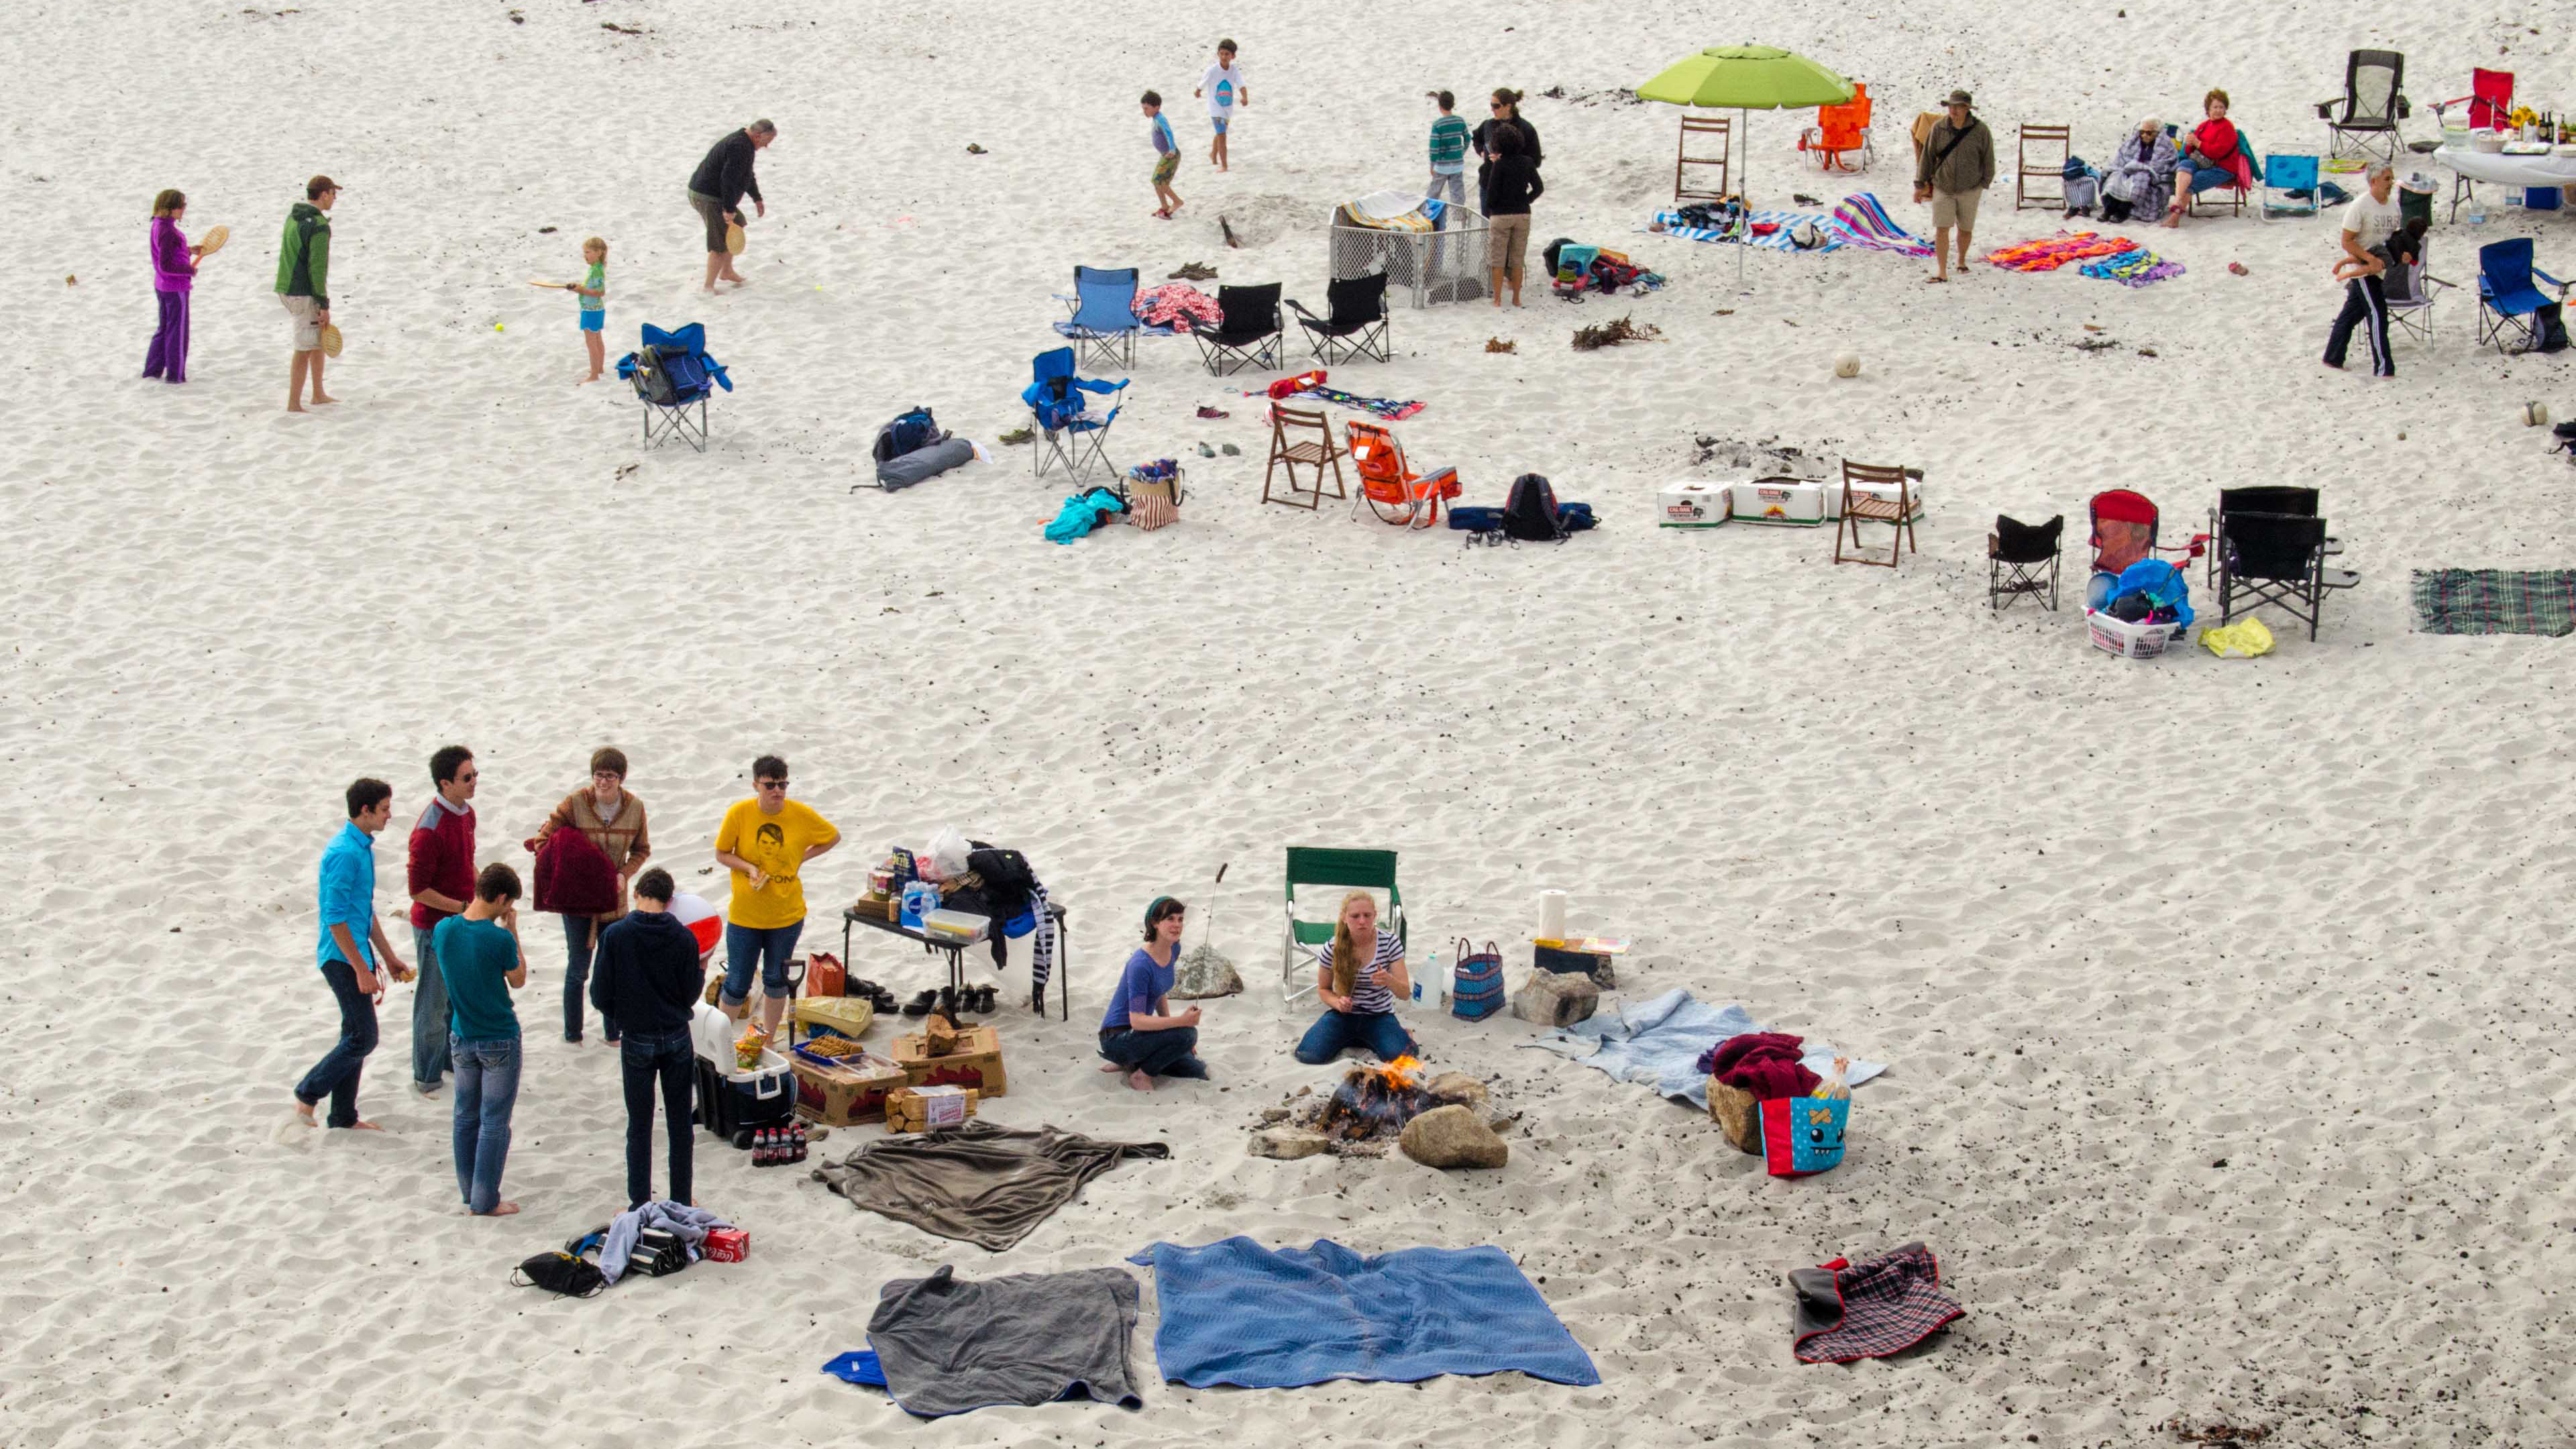 People gathering on the beach eating marshmallows